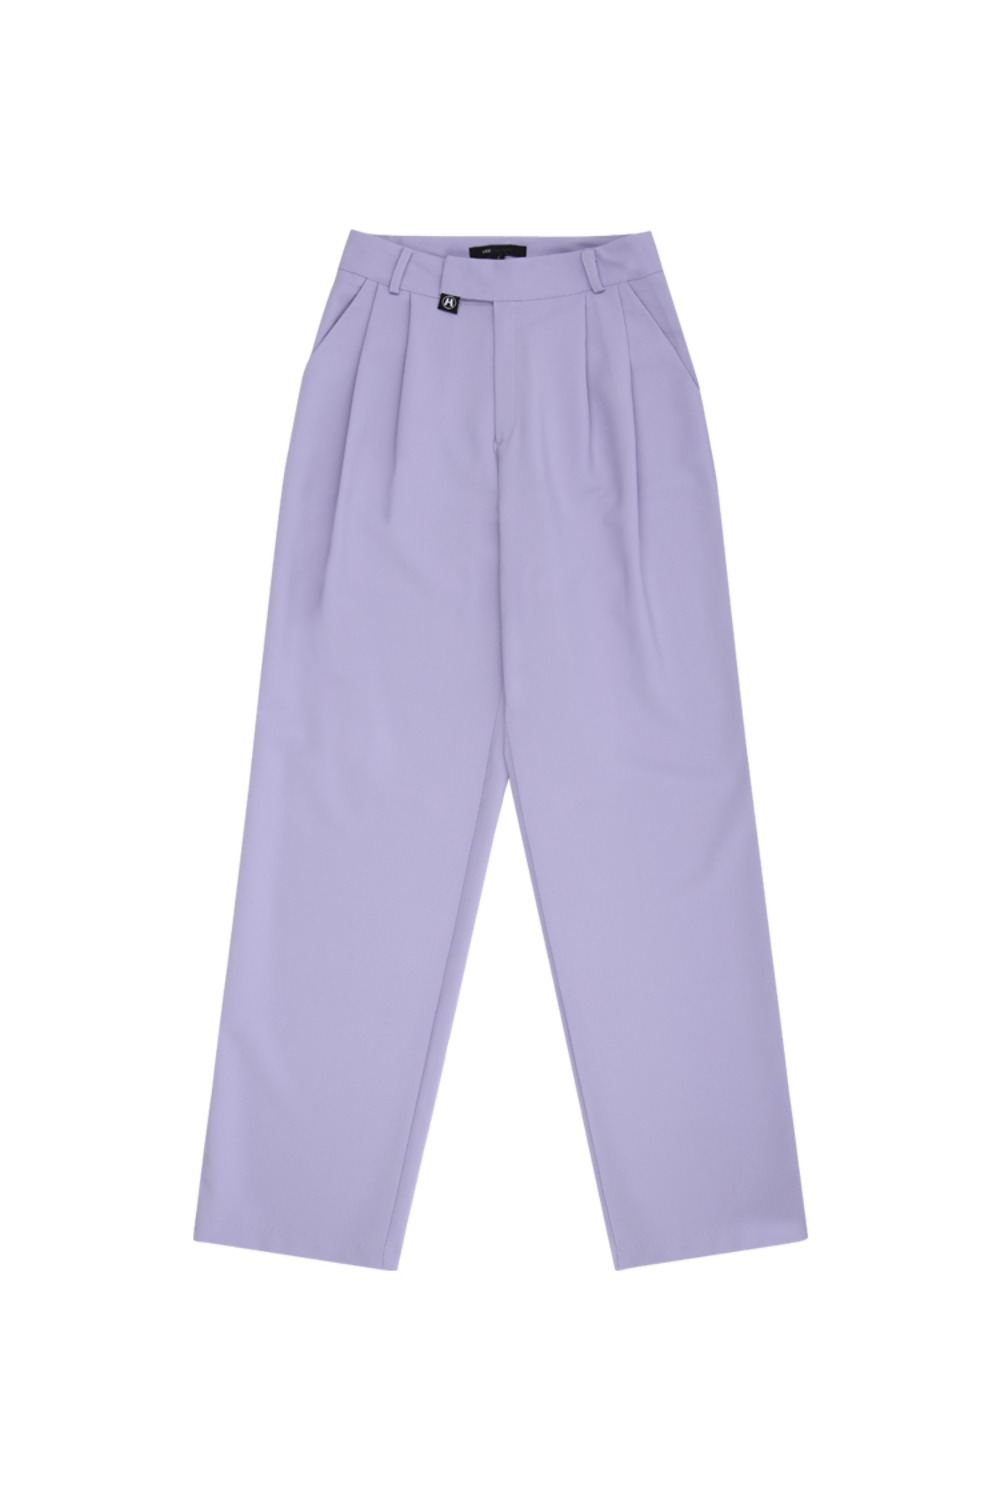 HIDE Pintuck Pants LIGHT PURPLE